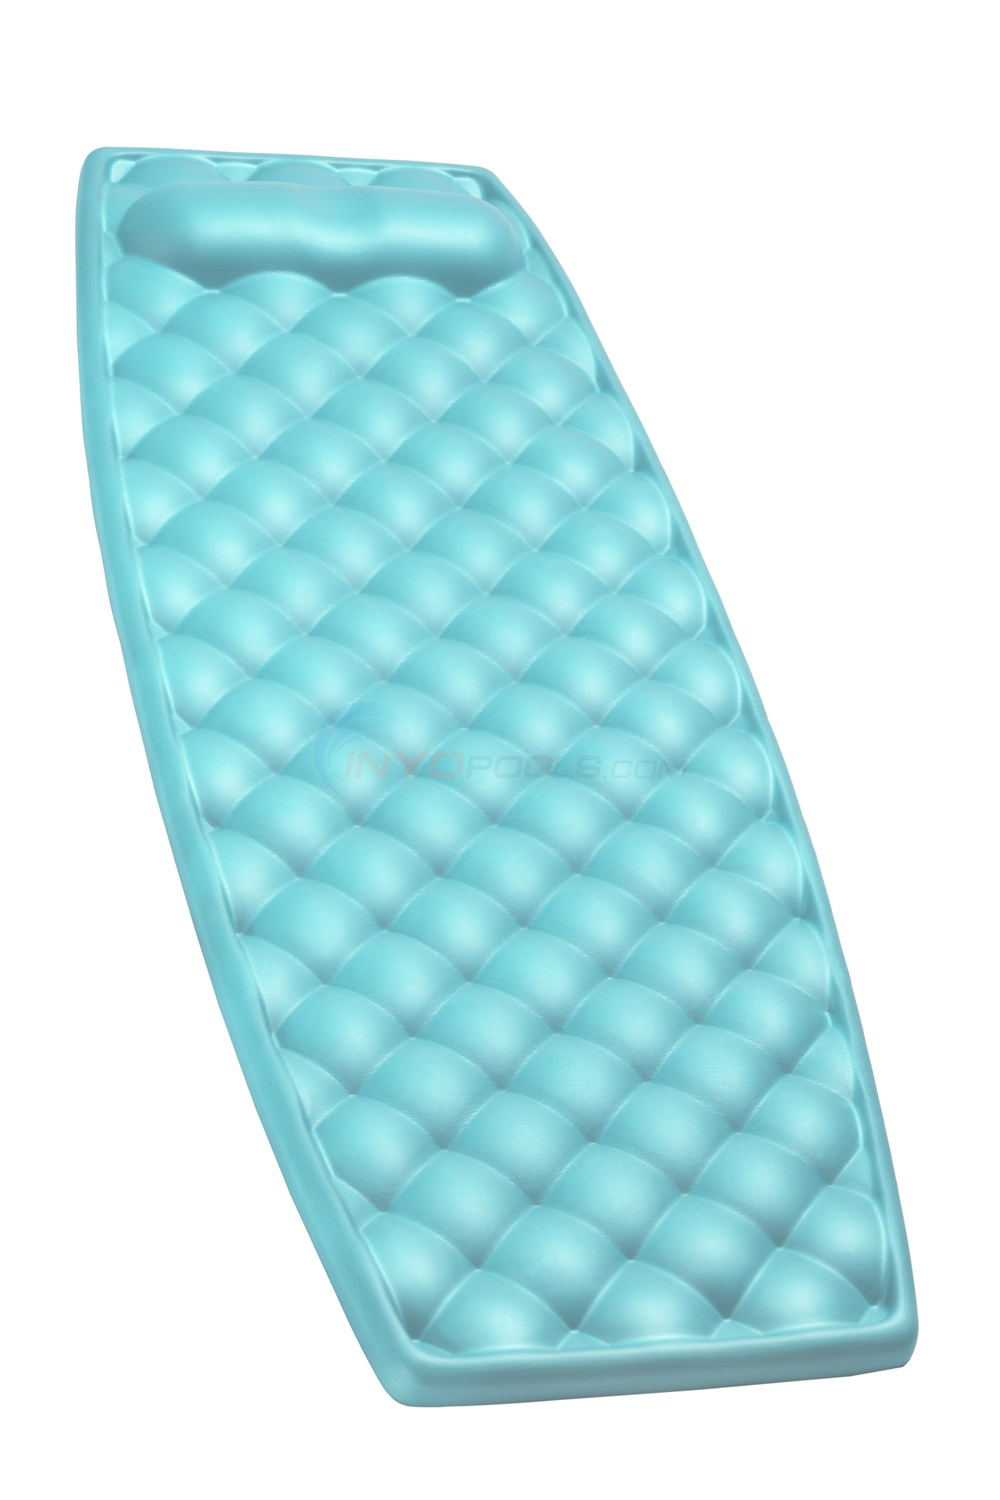 Blue Wave Cool Wave Pool Float - Teal - NT106